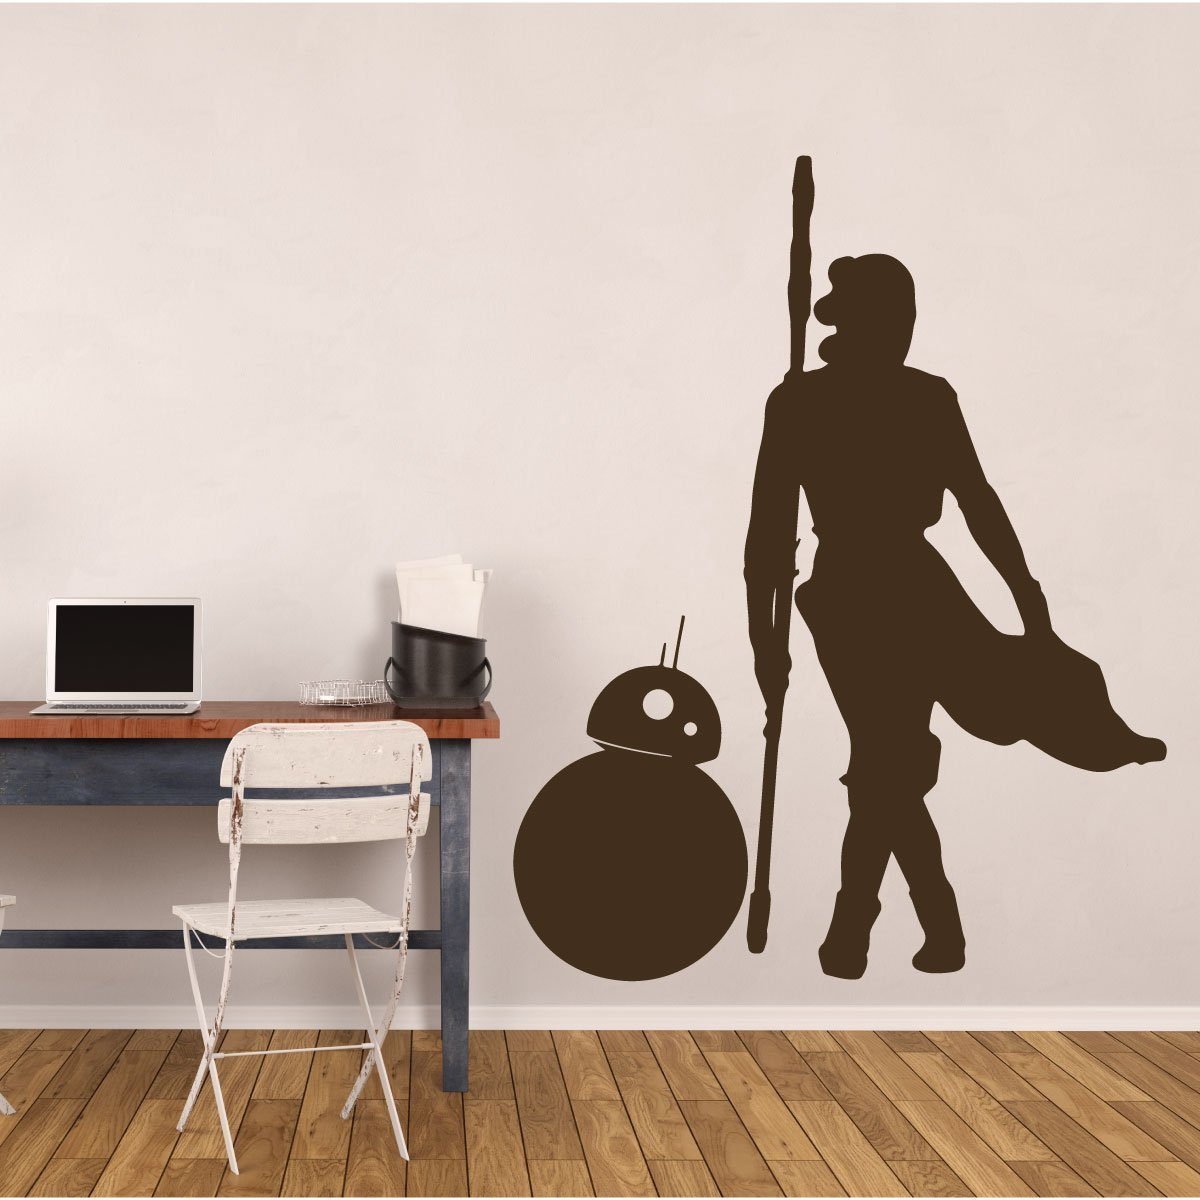 BB8 Decal With Rey - Star Wars Vinyl Decoration for Bedroom, Playroom, Study Area And Movie Room